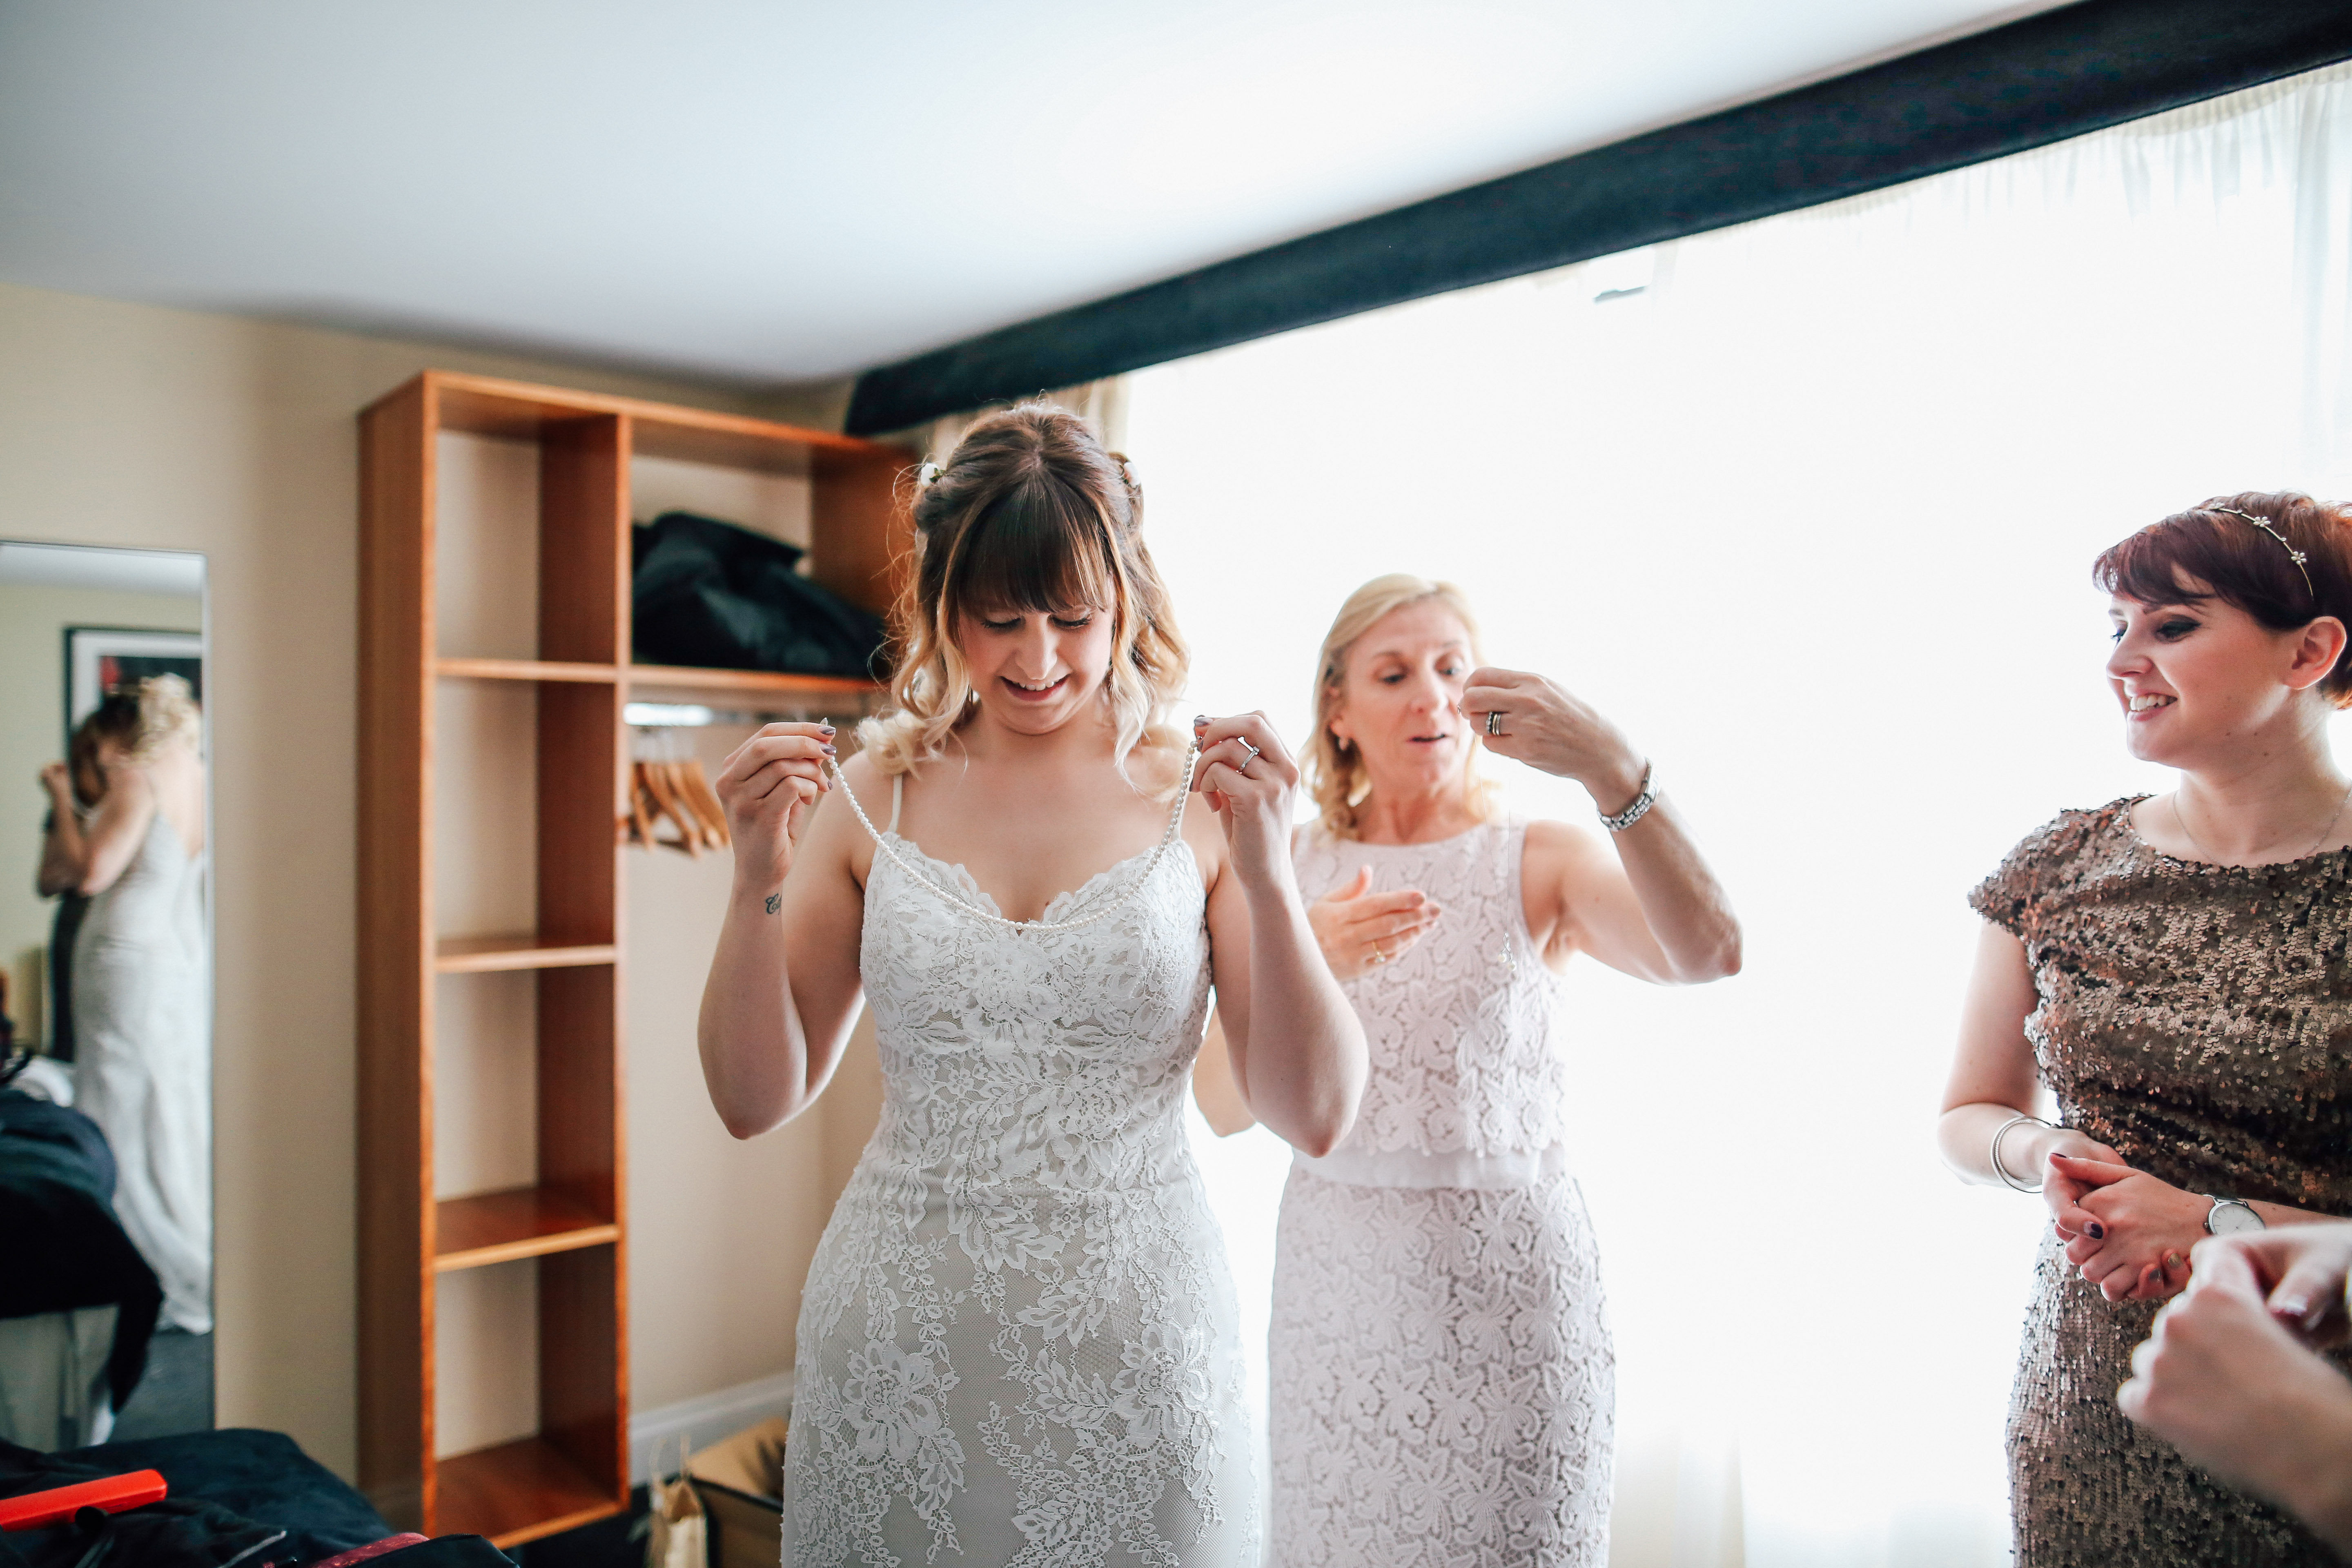 Bride getting ready Candid Wedding Photography Manchester